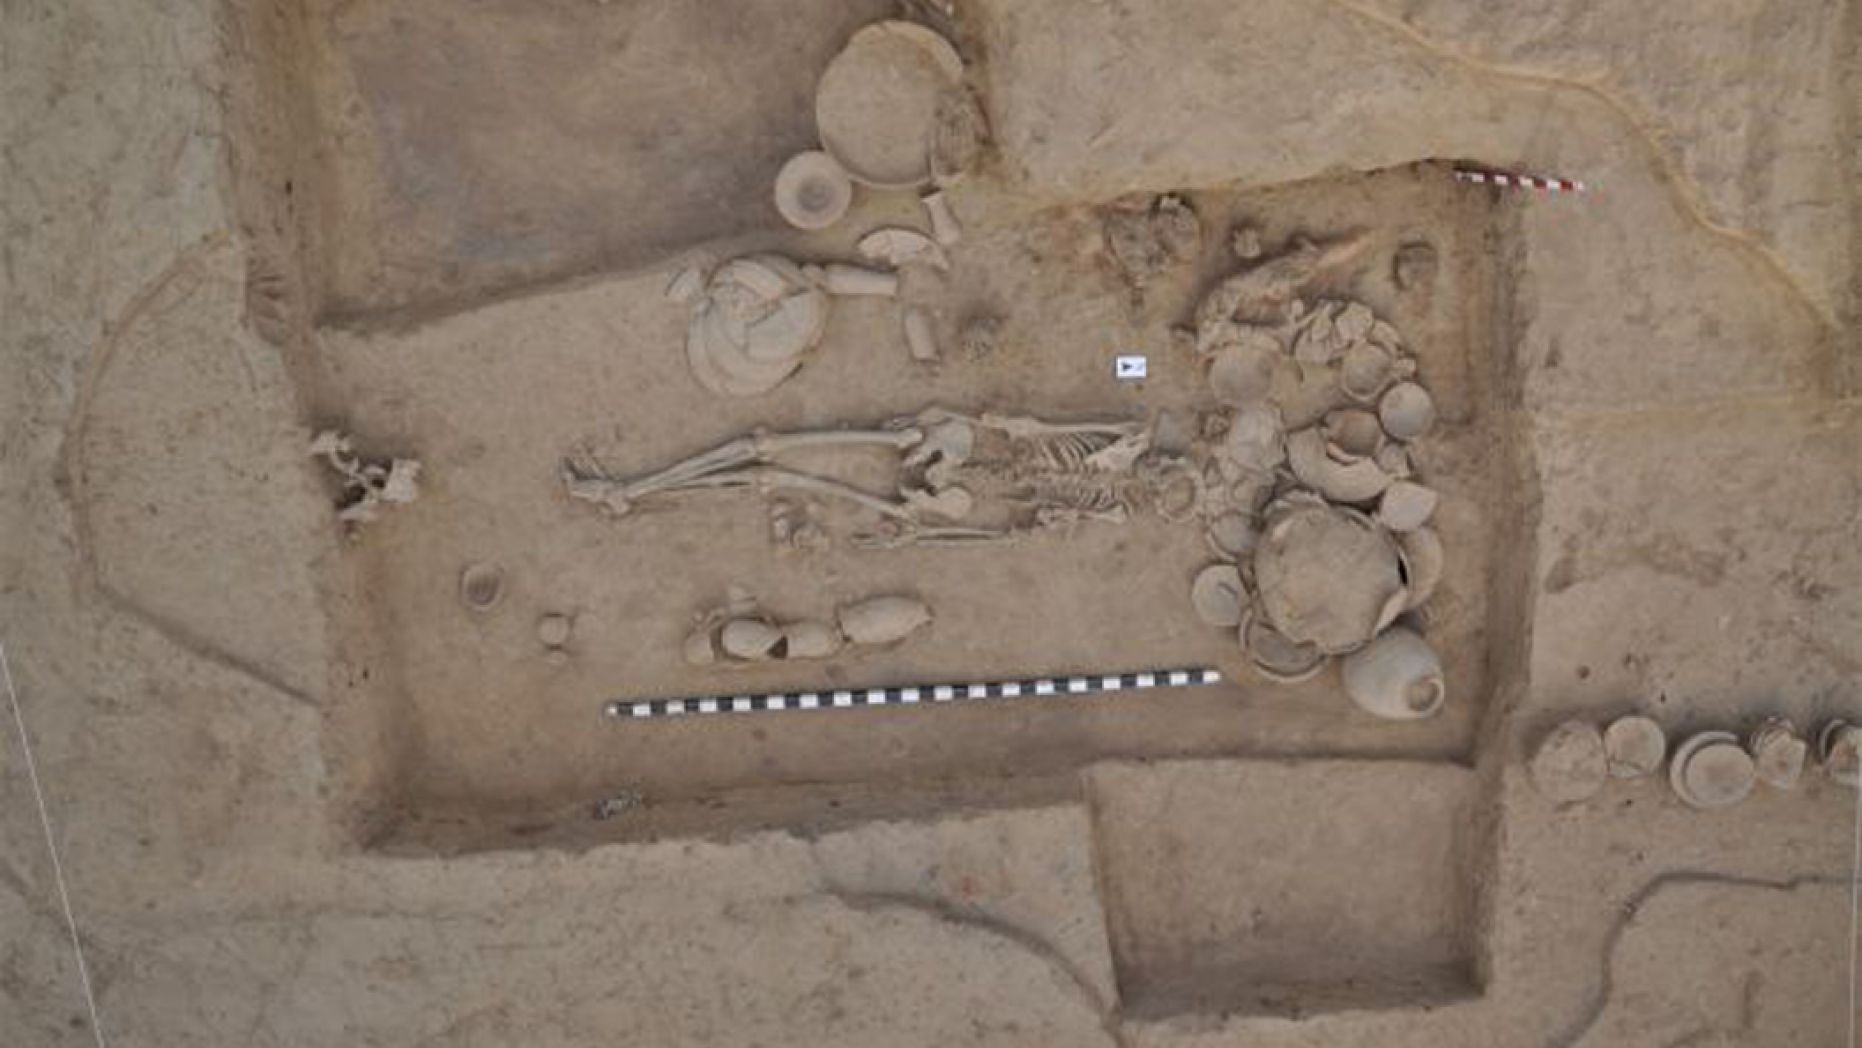 Genetic Study Suggests South Asians Today Descend from Indus Valley Civilization